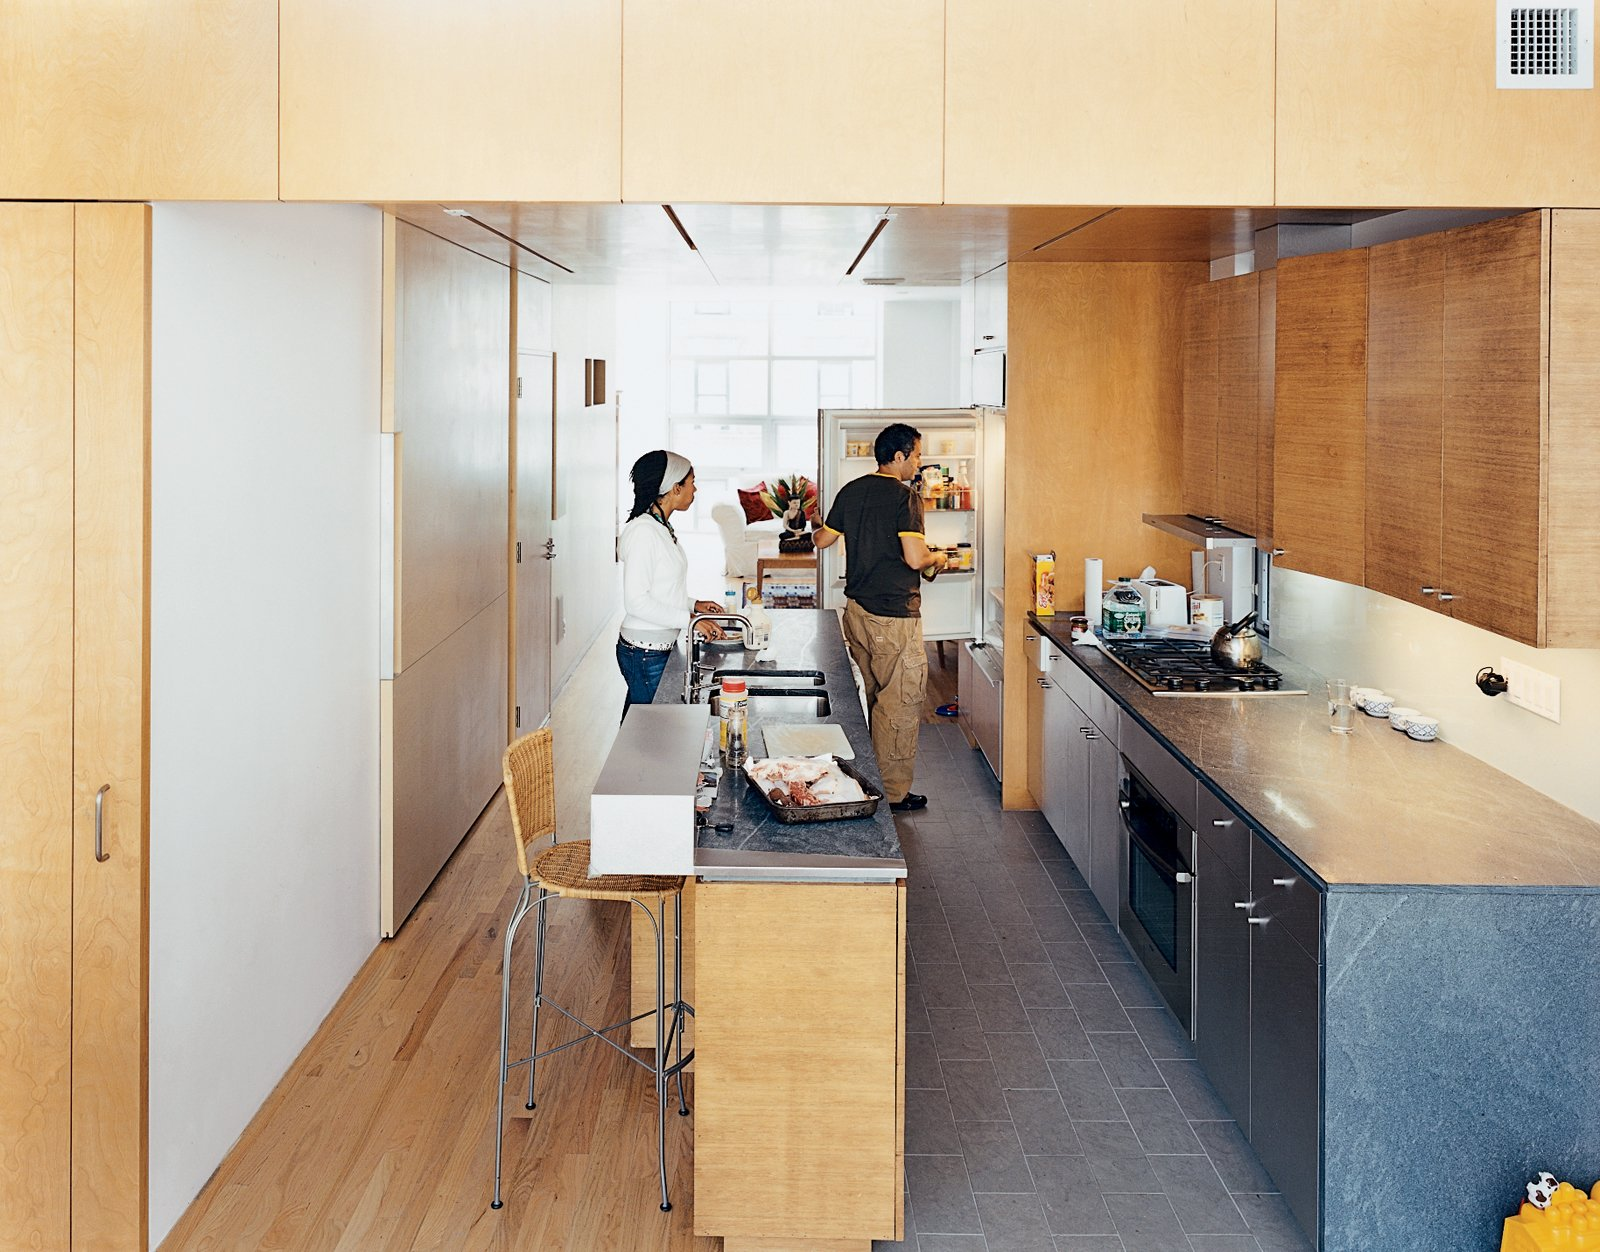 """Kitchen, Undermount Sink, Wood Cabinet, Stone Counter, Range, and Medium Hardwood Floor In the kitchen, the architects contrasted the oak floor, bamboo cabinetry, and birch walls and ceiling with what architect Jonathan Knowles calls """"a family of grays"""": granite floor tiles, limestone countertops, and the steel stairway. The birch wall behind Yvette is actually the sliding door to the pantry closet.  Take Me to Birch: 8 Houses that Make Use of Birch Wood by Luke Hopping from Harlem Renaissance"""